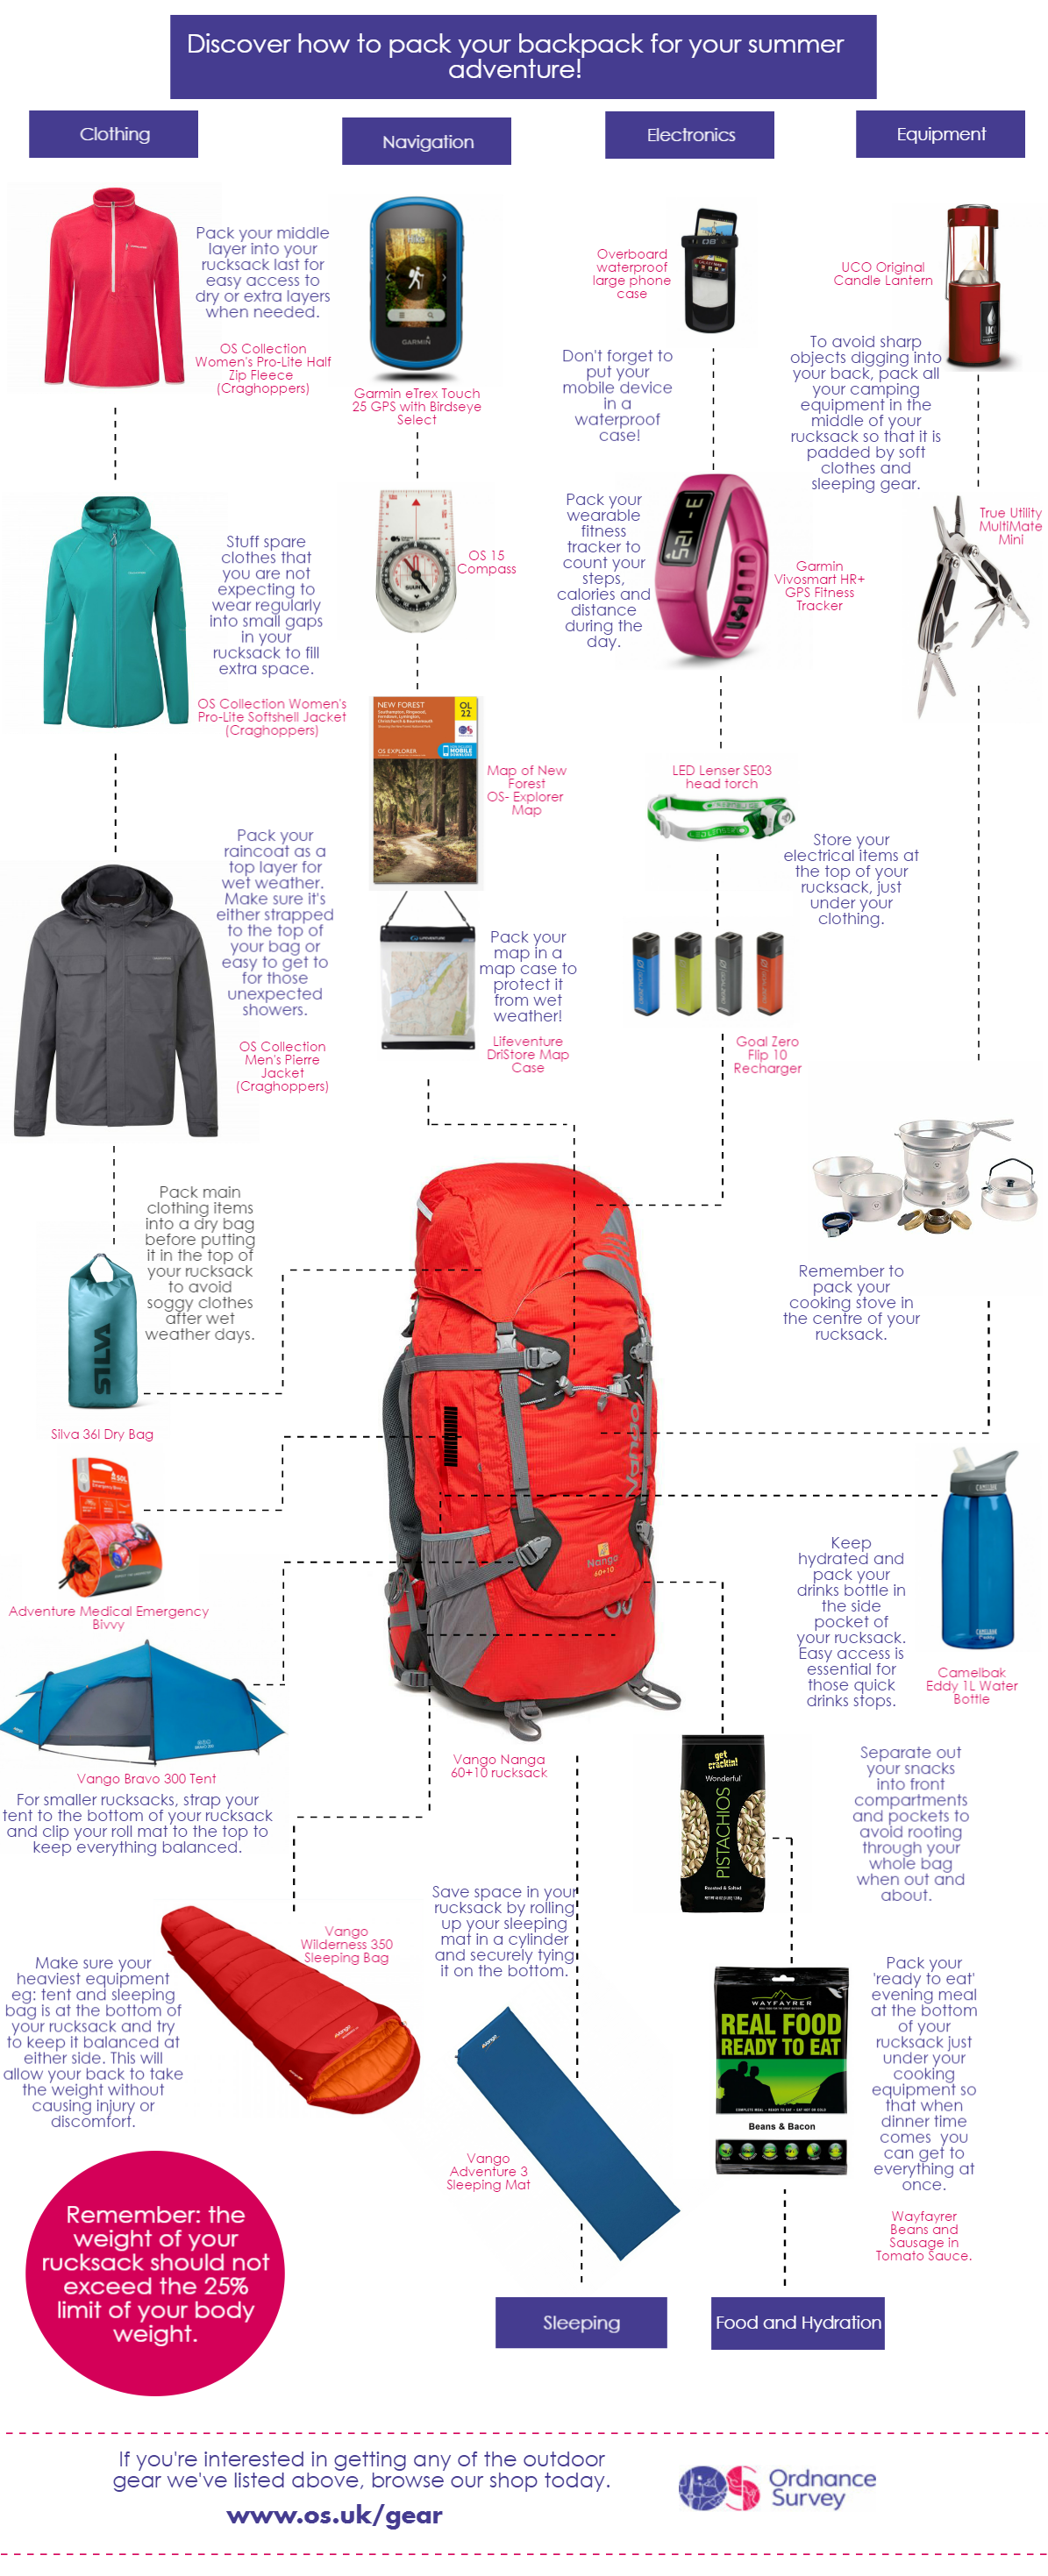 1a9096cd1bb Discover how to pack your rucksack for an adventure | OS GetOutside